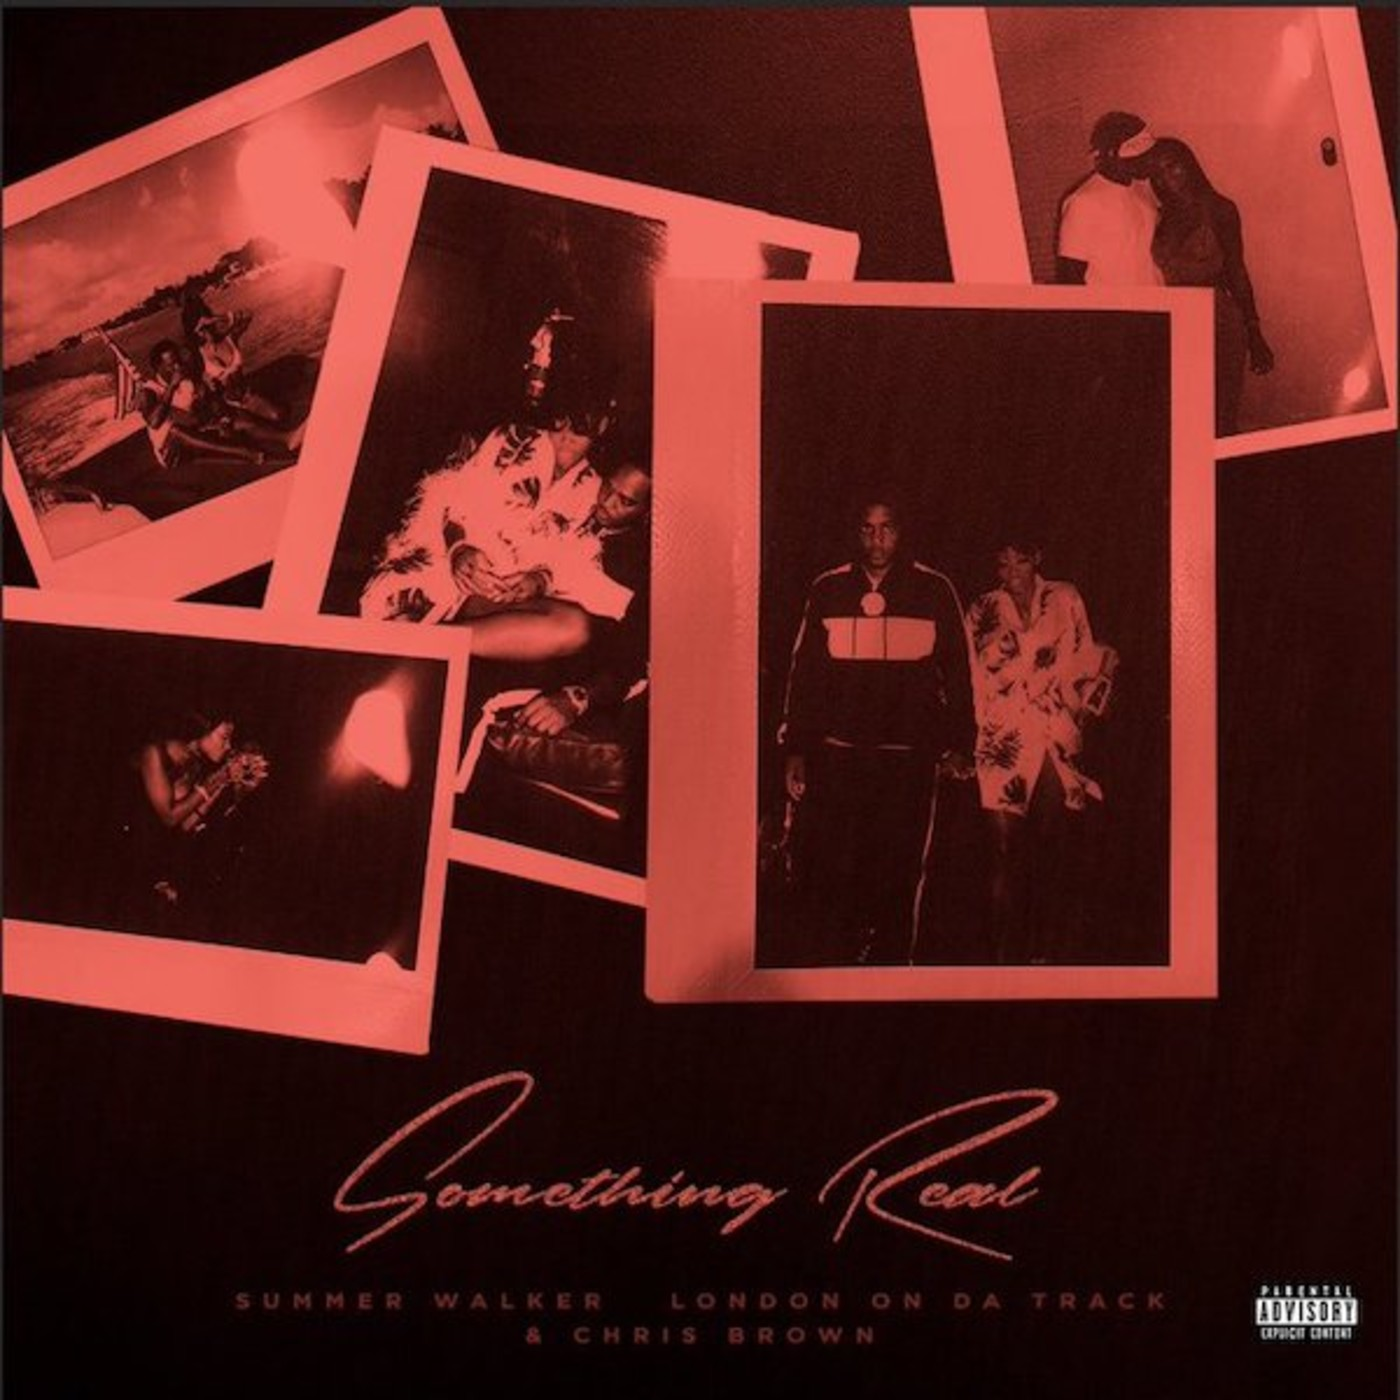 """Something Real"" Summer Walker x Chris Brown x London on da Track"